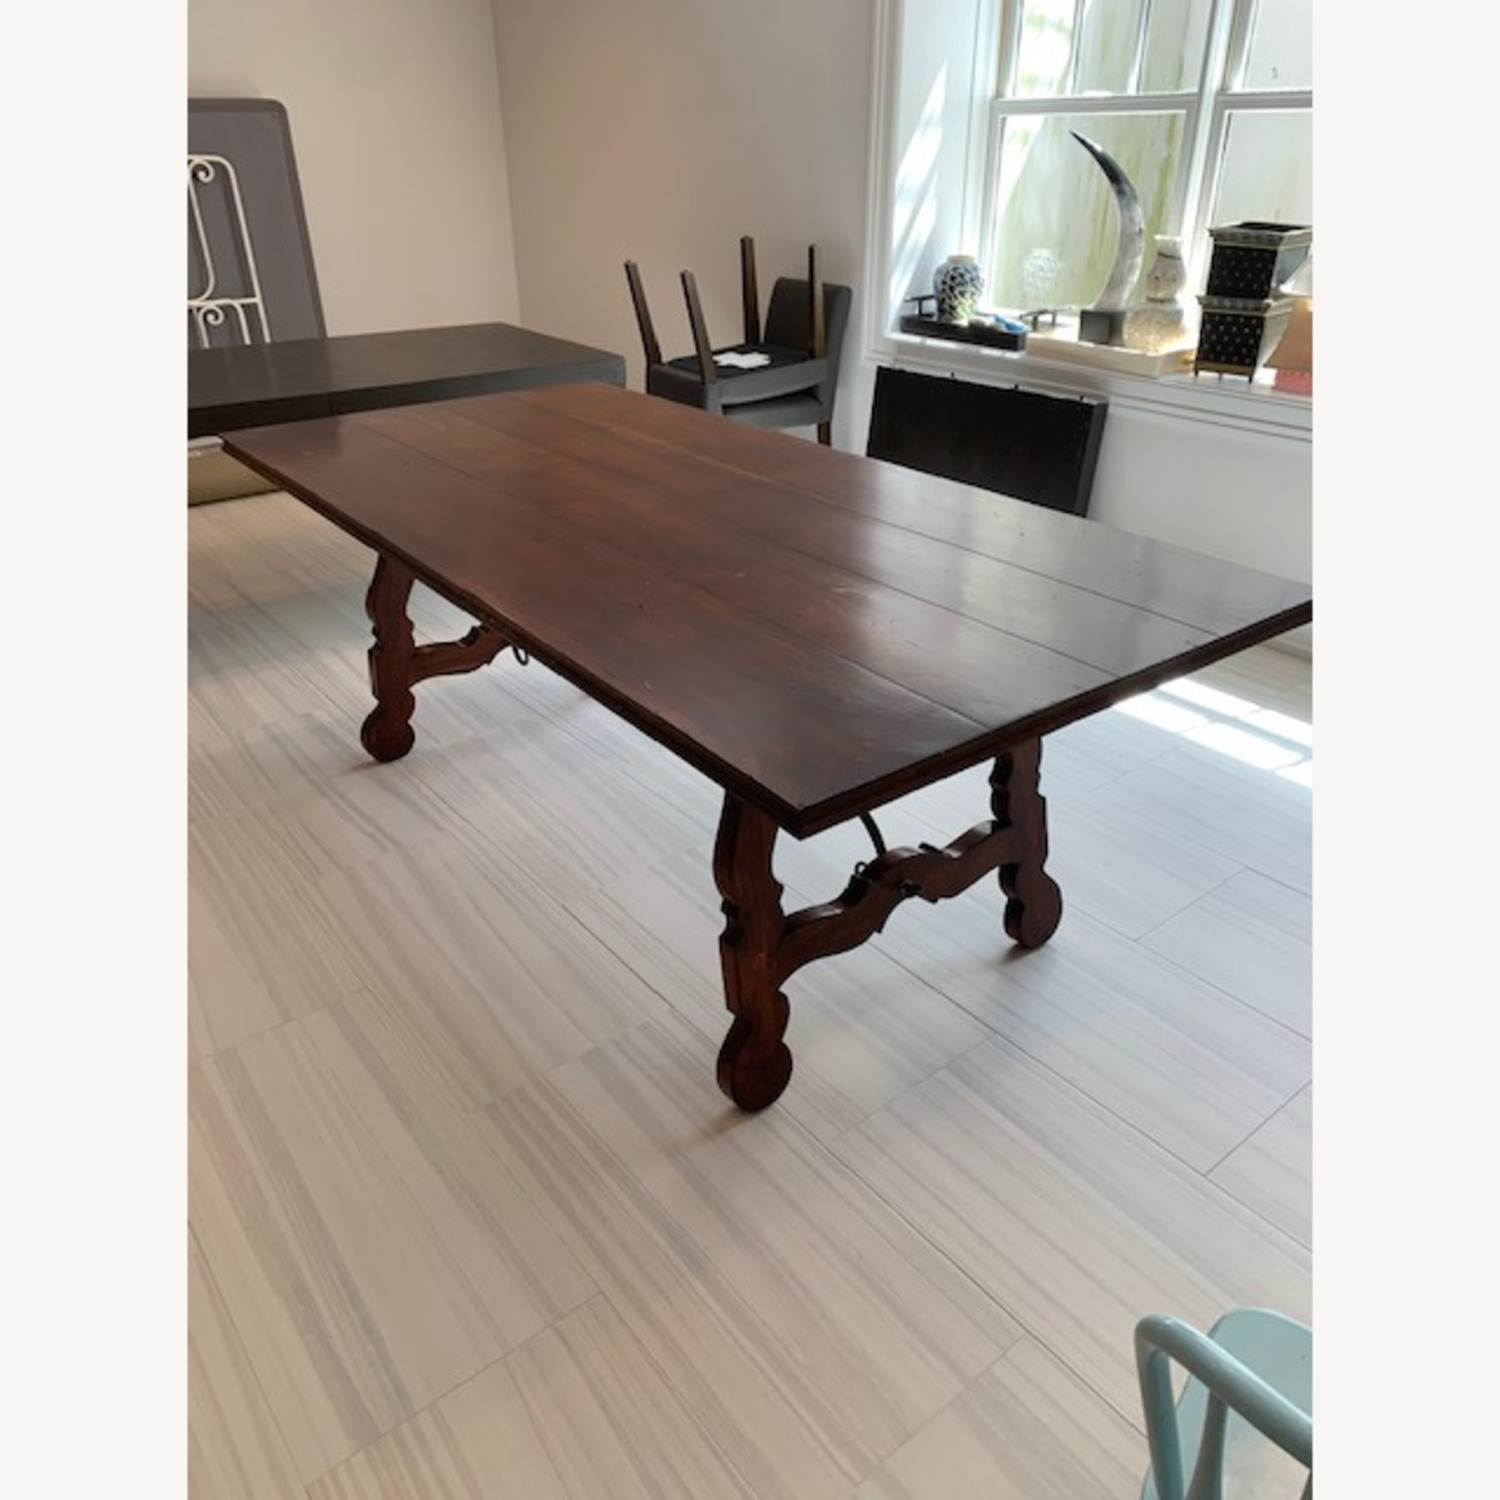 Spanish Style Farm Trestle Table with Forged Steel - image-5